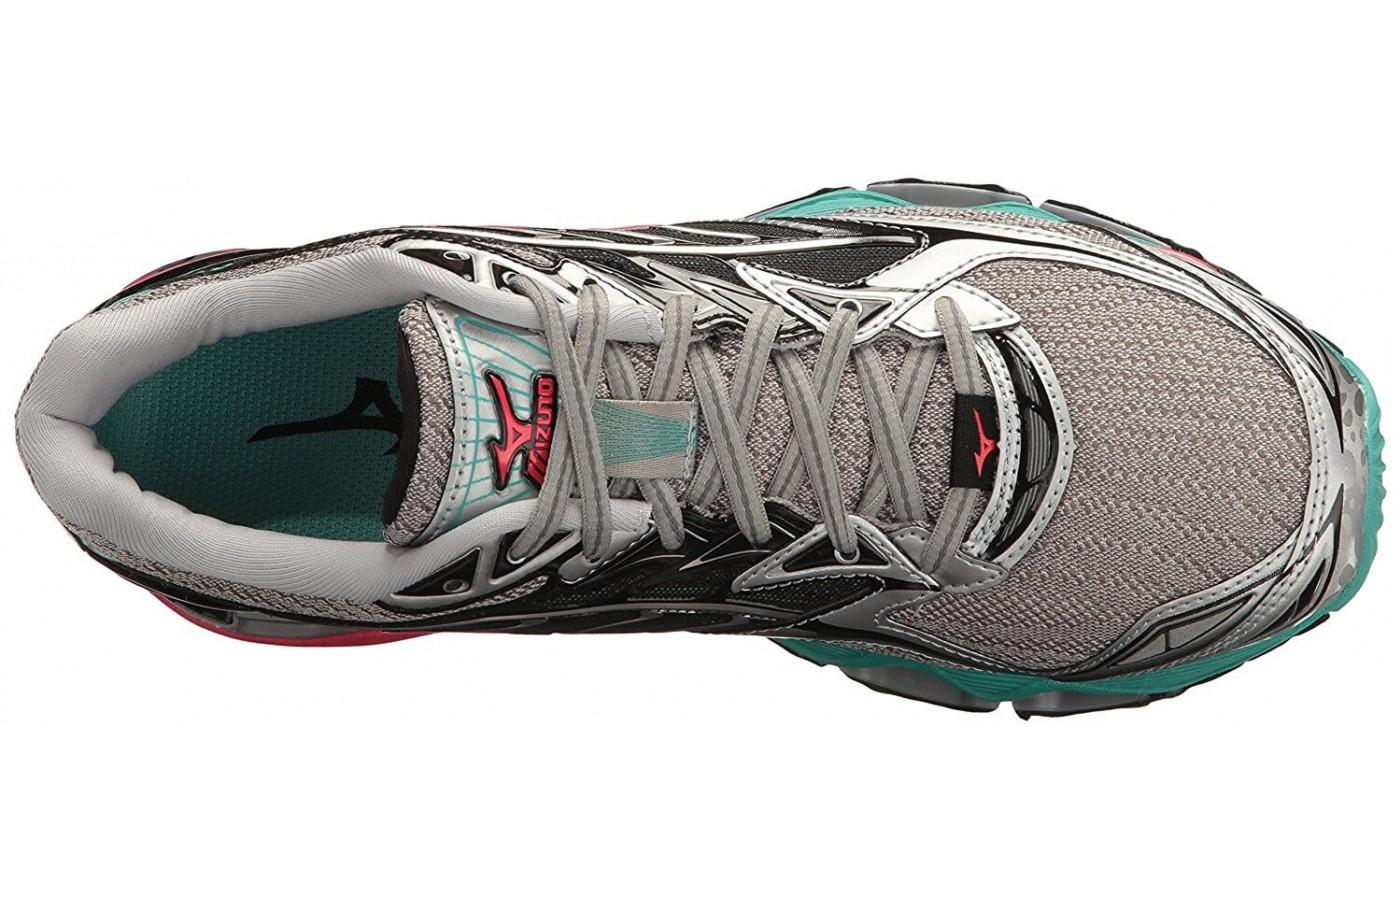 The AIRmesh of the upper allows for better circulation around feet, especially in the toe area.